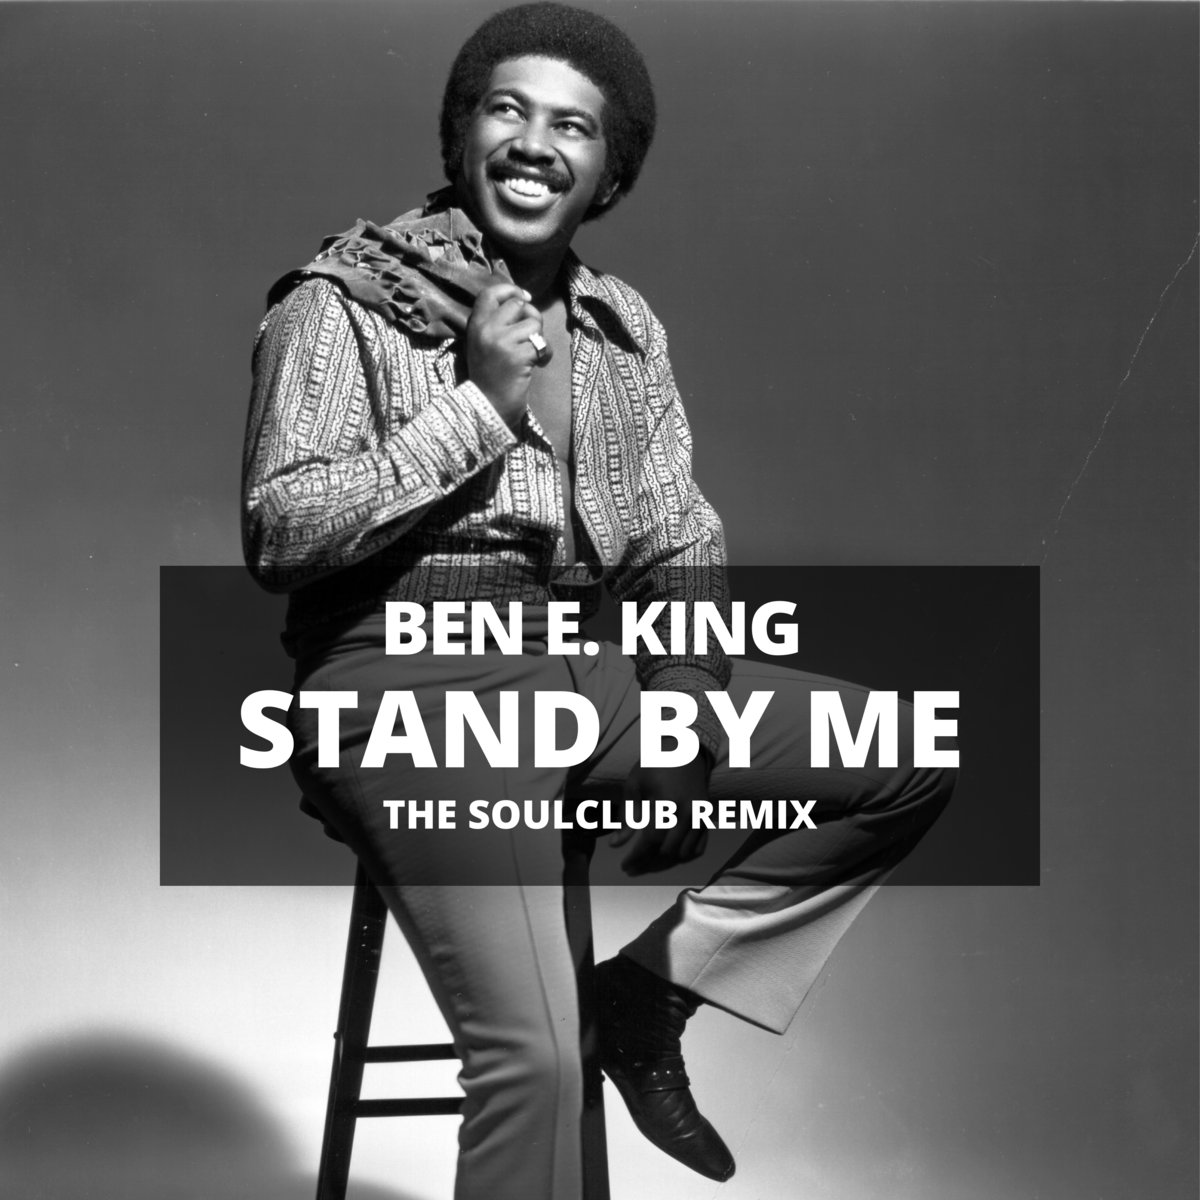 Ben E. King - Stand By Me (The SoulClub Remix) | Mario Marques